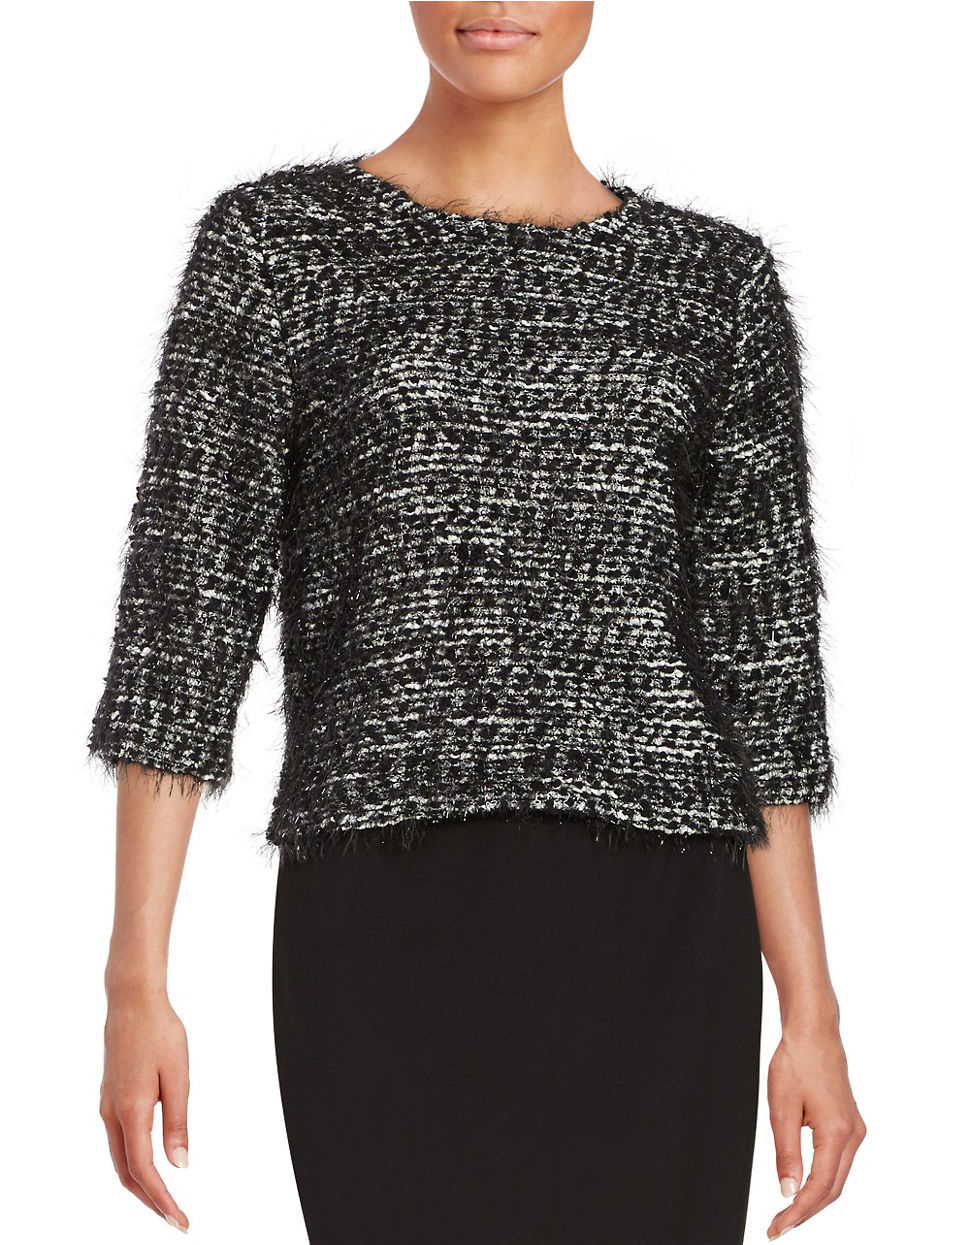 Lyst Vince Camuto Petite Boucle Knit Sweater In Black